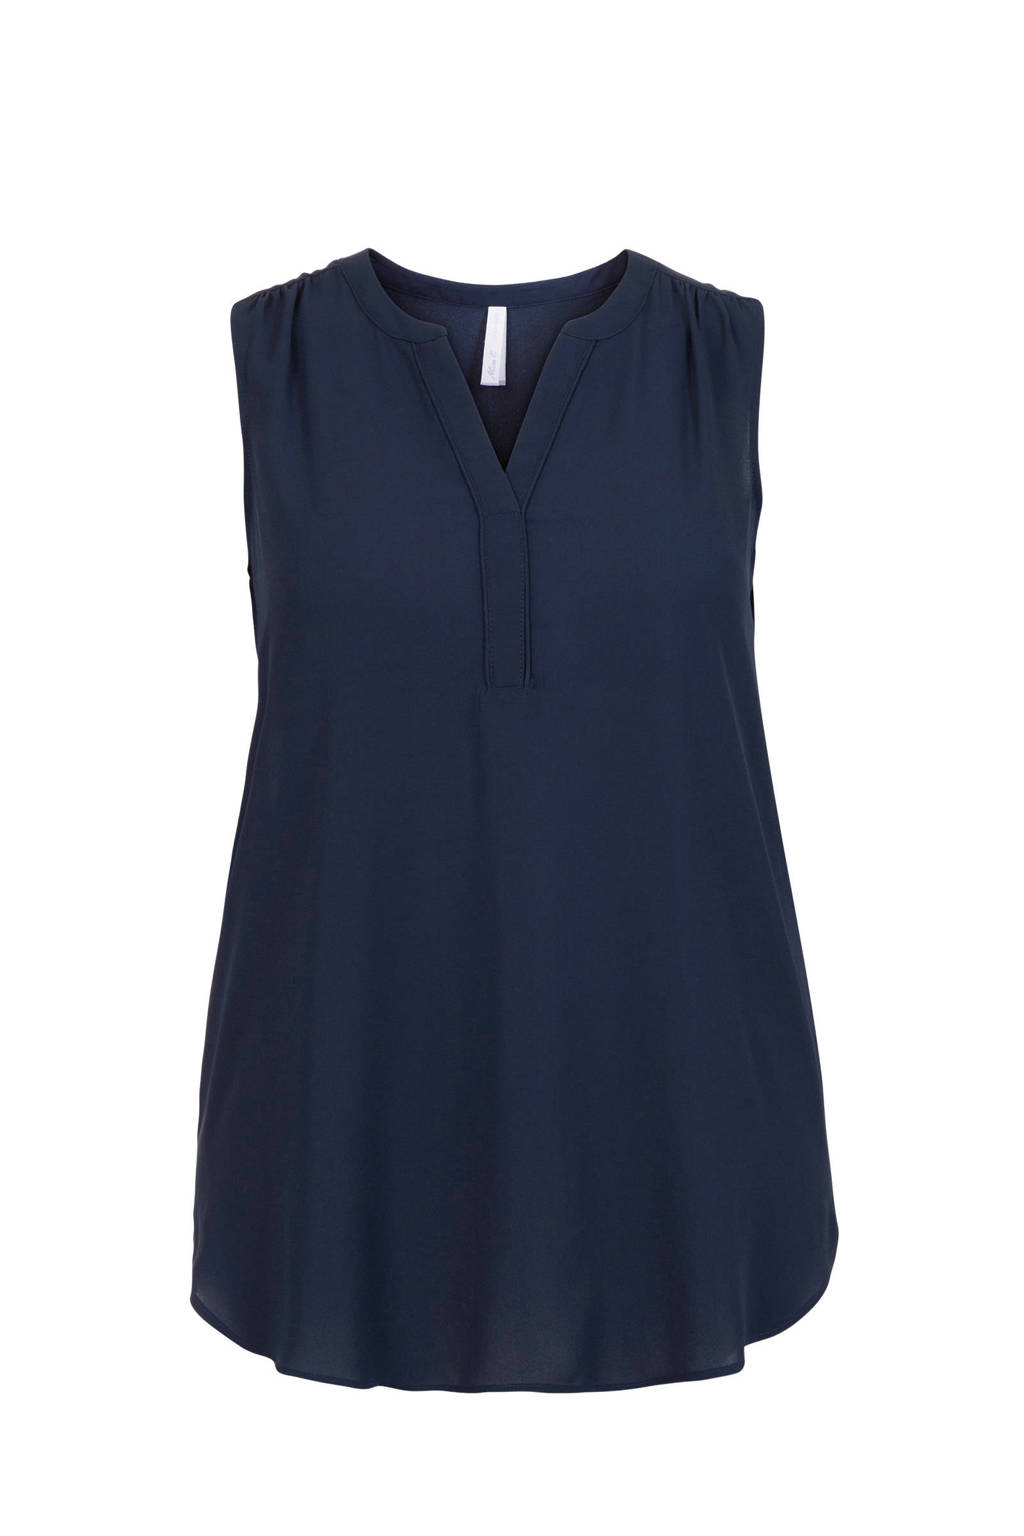 Miss Etam Plus top donkerblauw, Donkerblauw